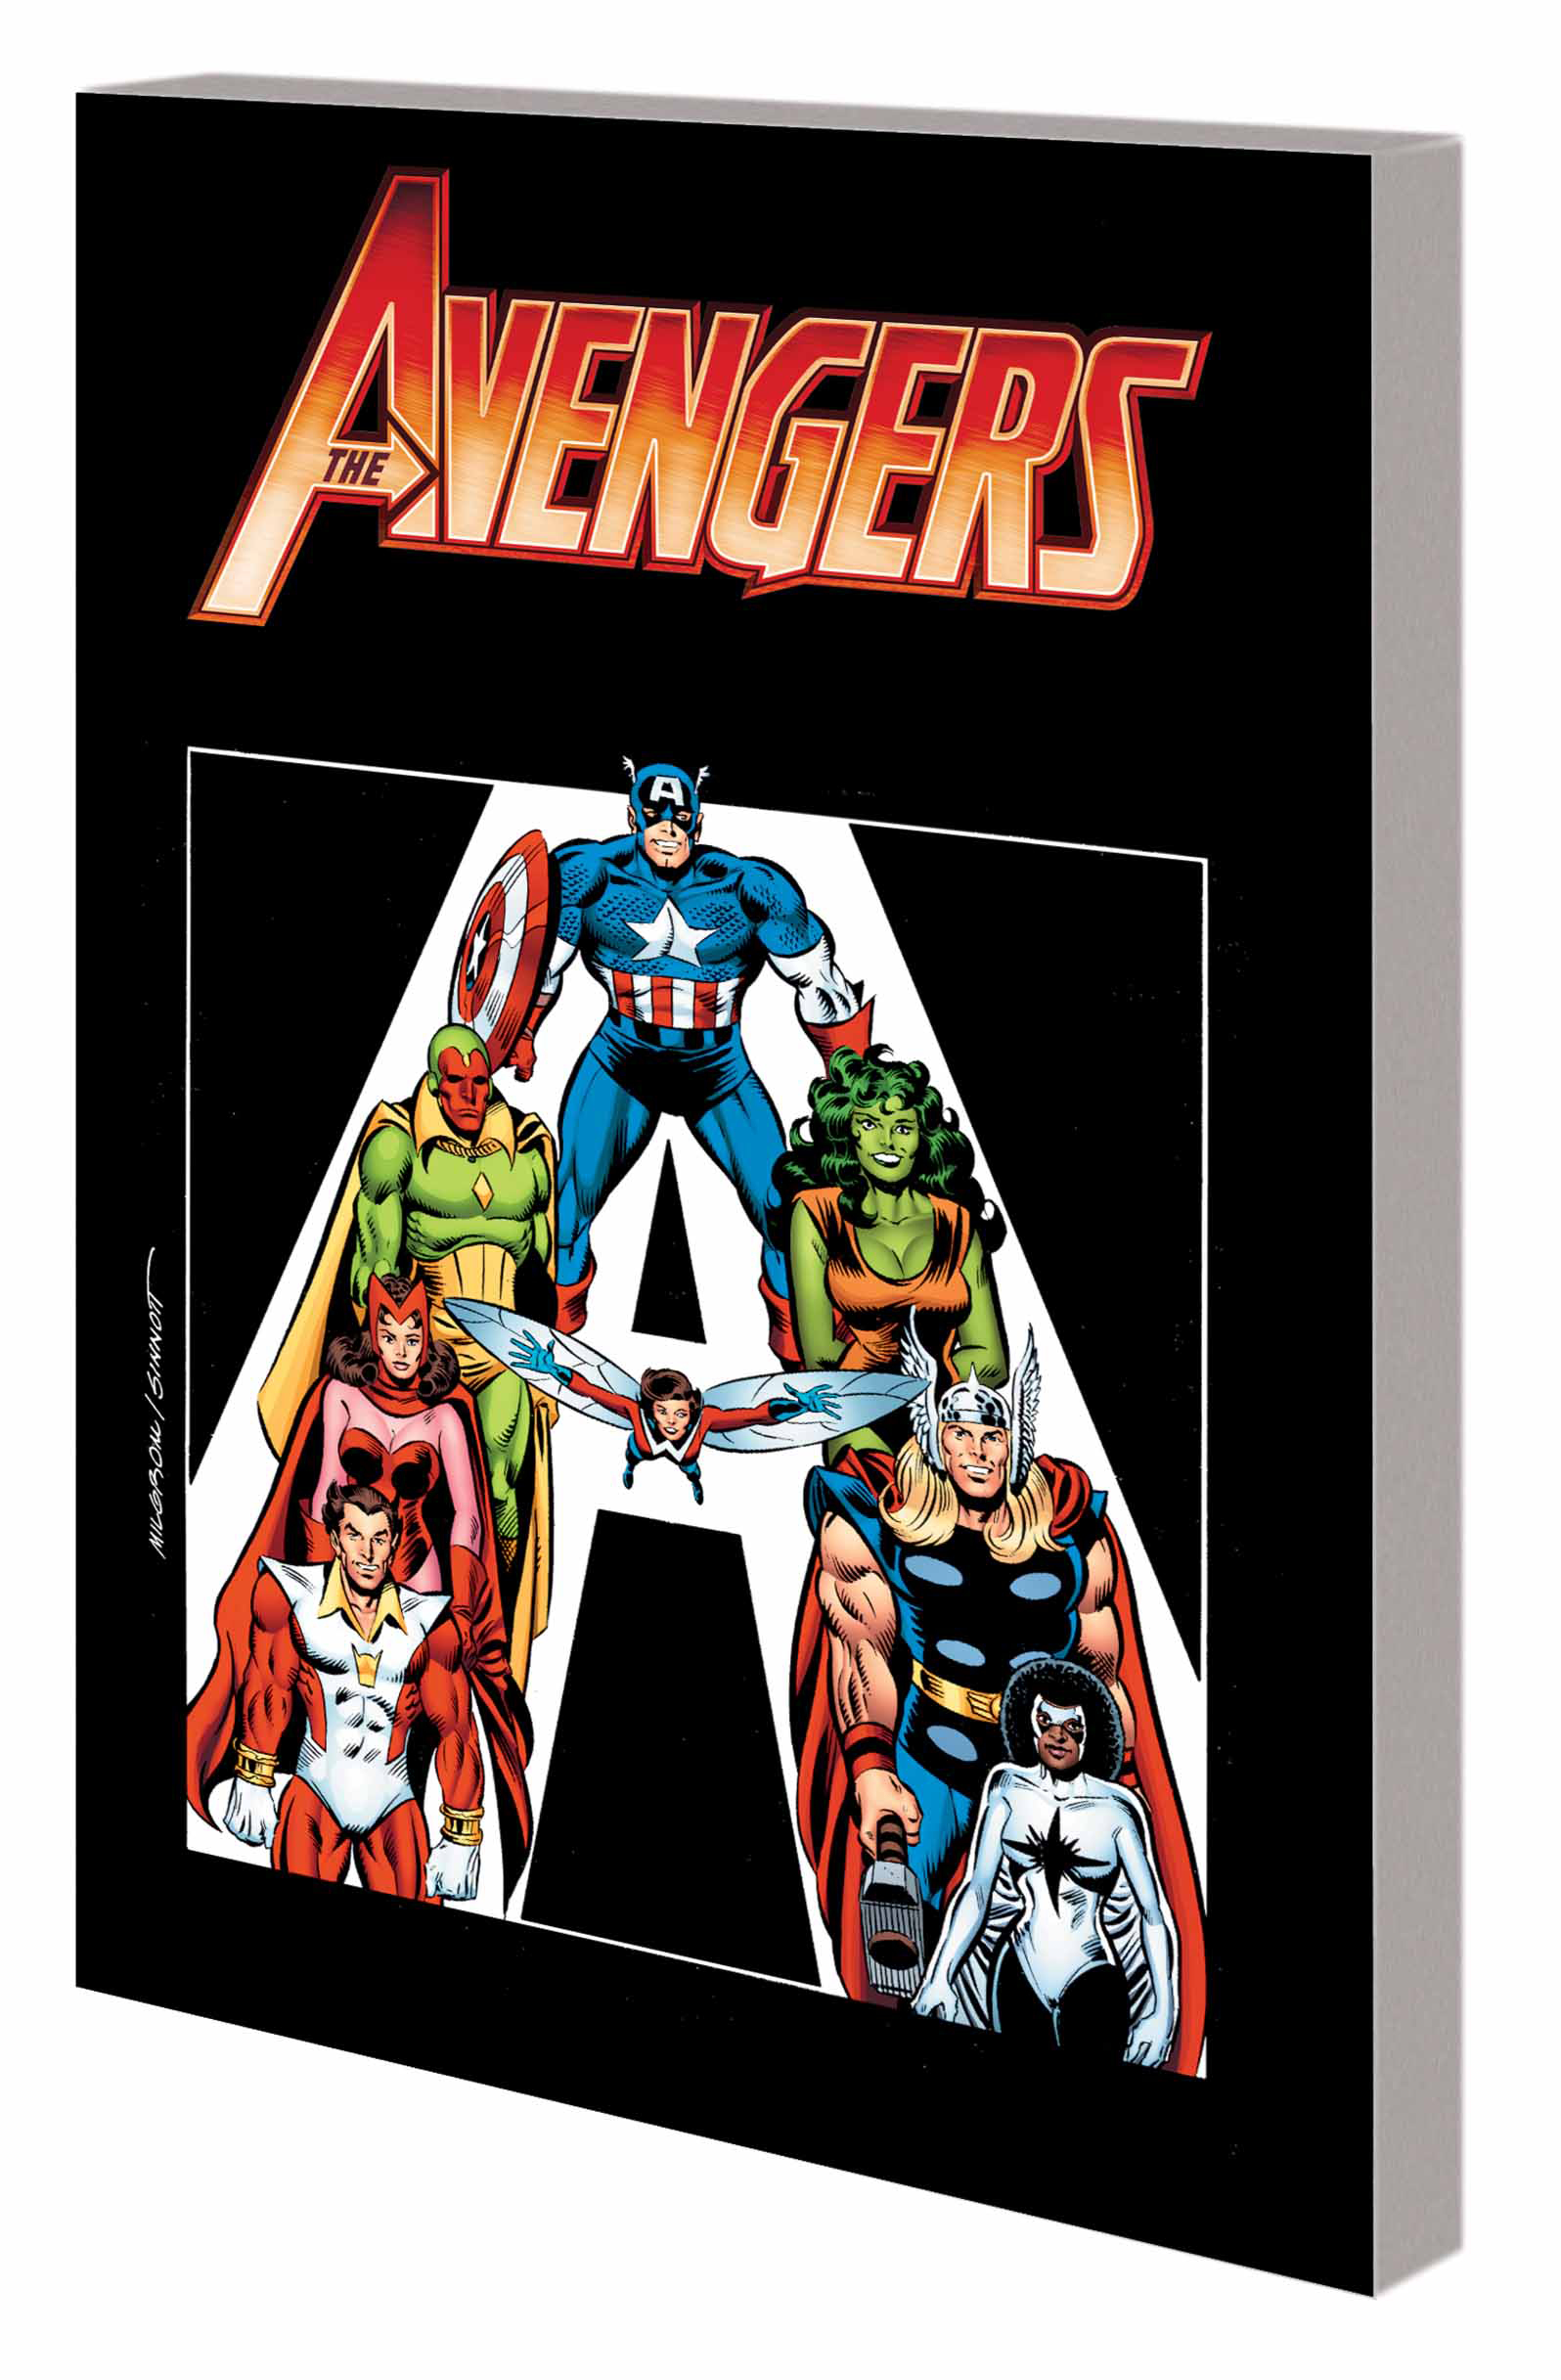 AVENGERS TP BOOK 01 ABSOLUTE VISION